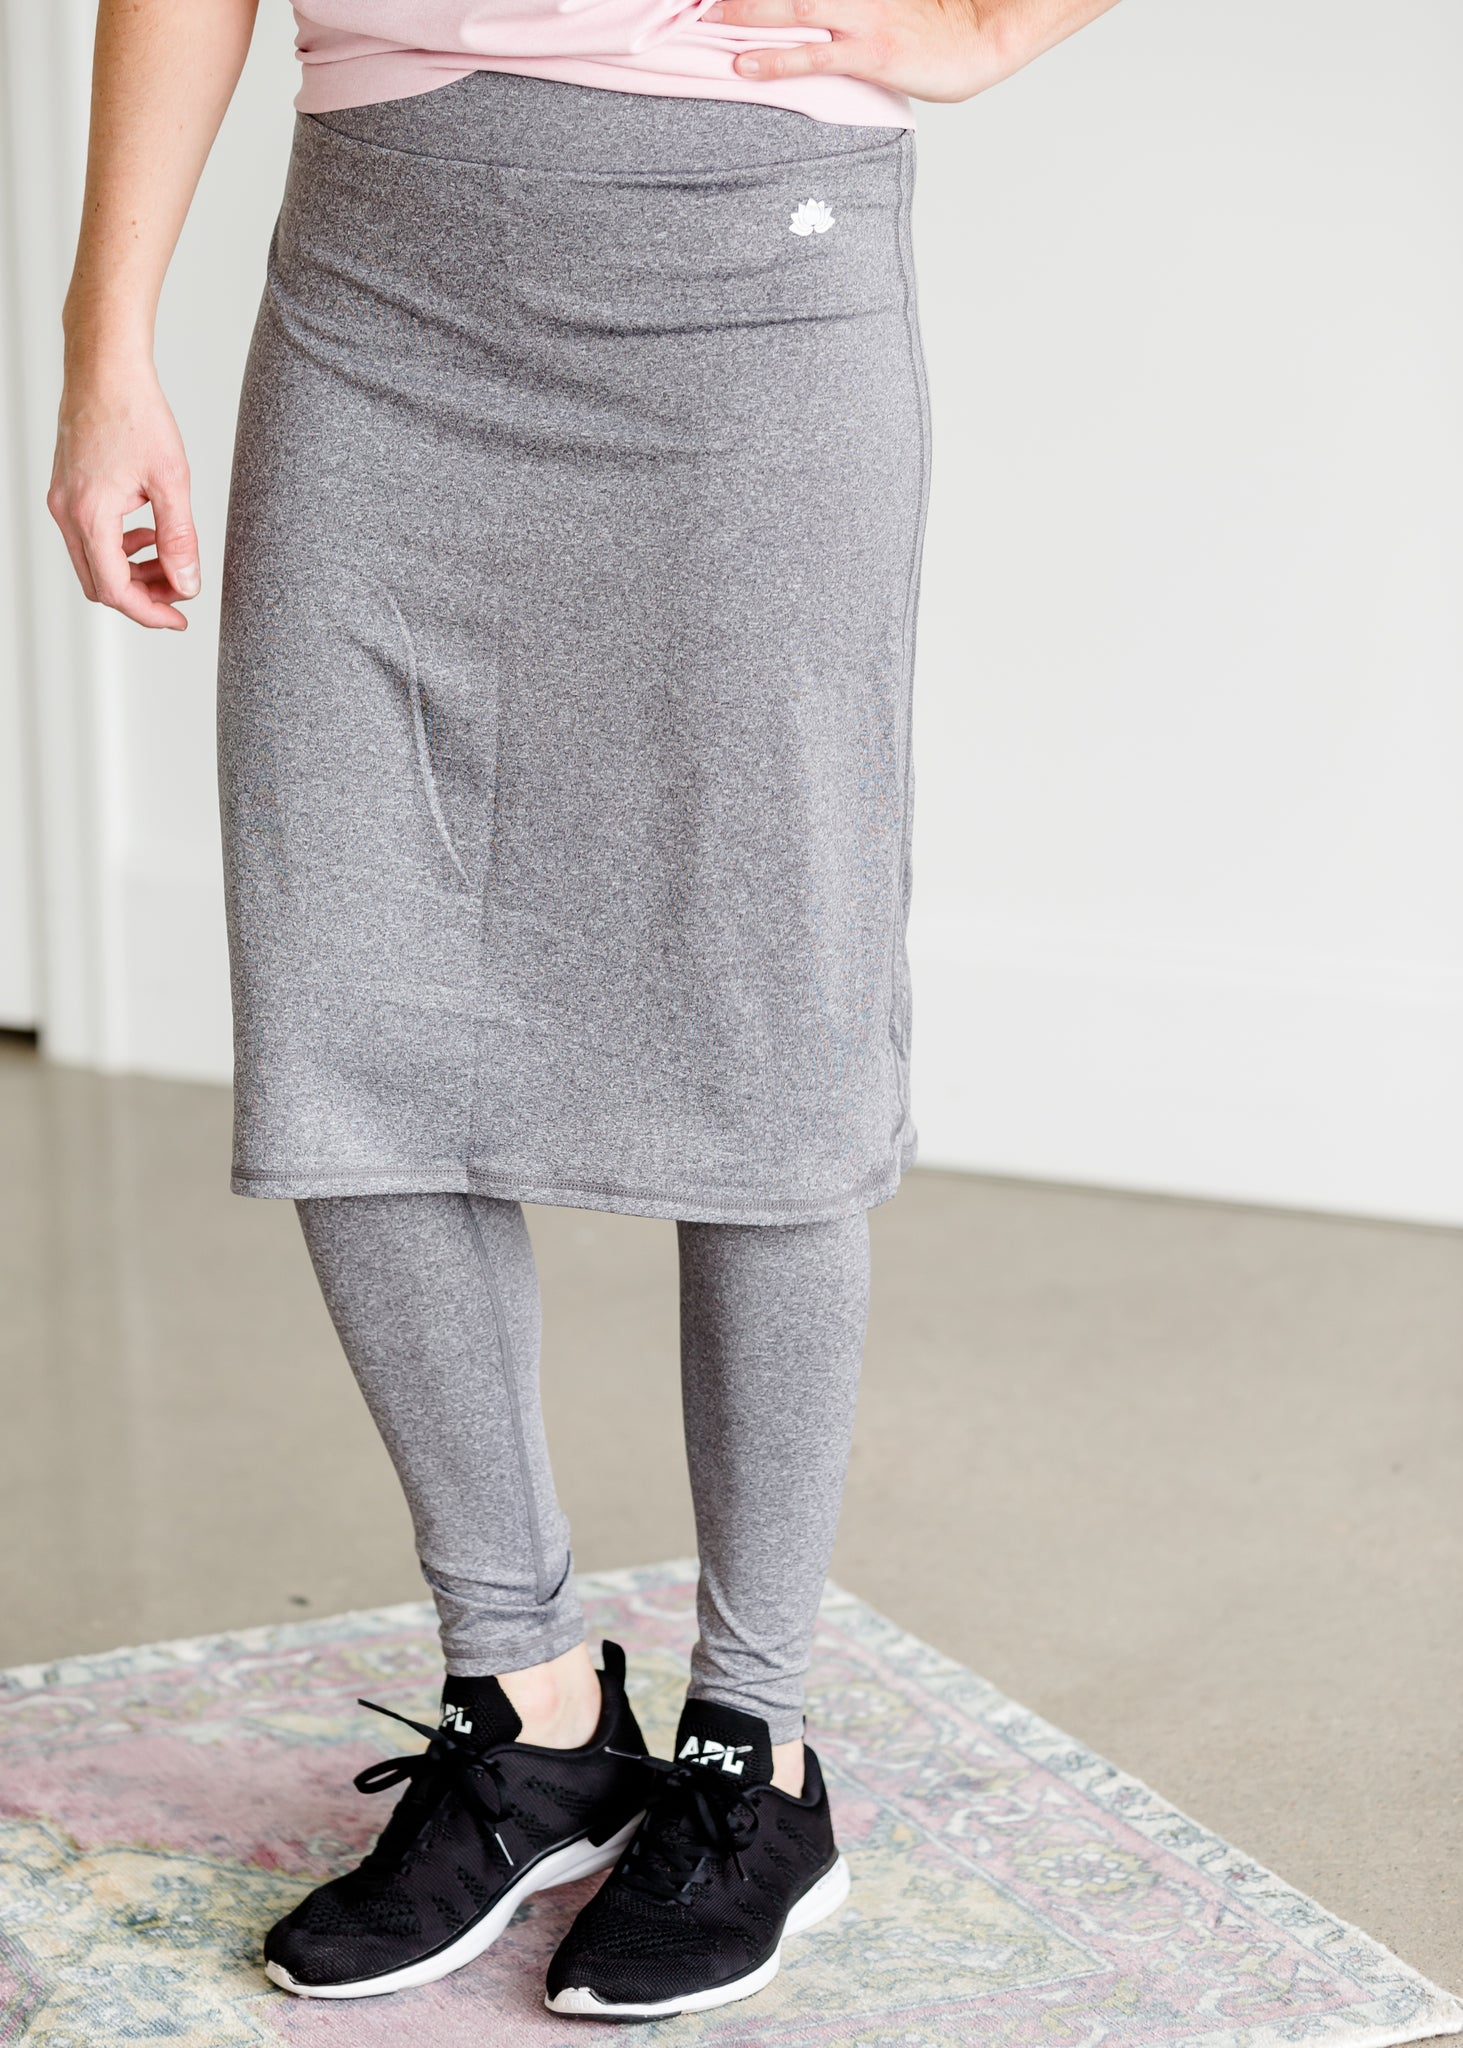 Snoga Long Shirttail Heather Gray Sport Skirt - FINAL SALE